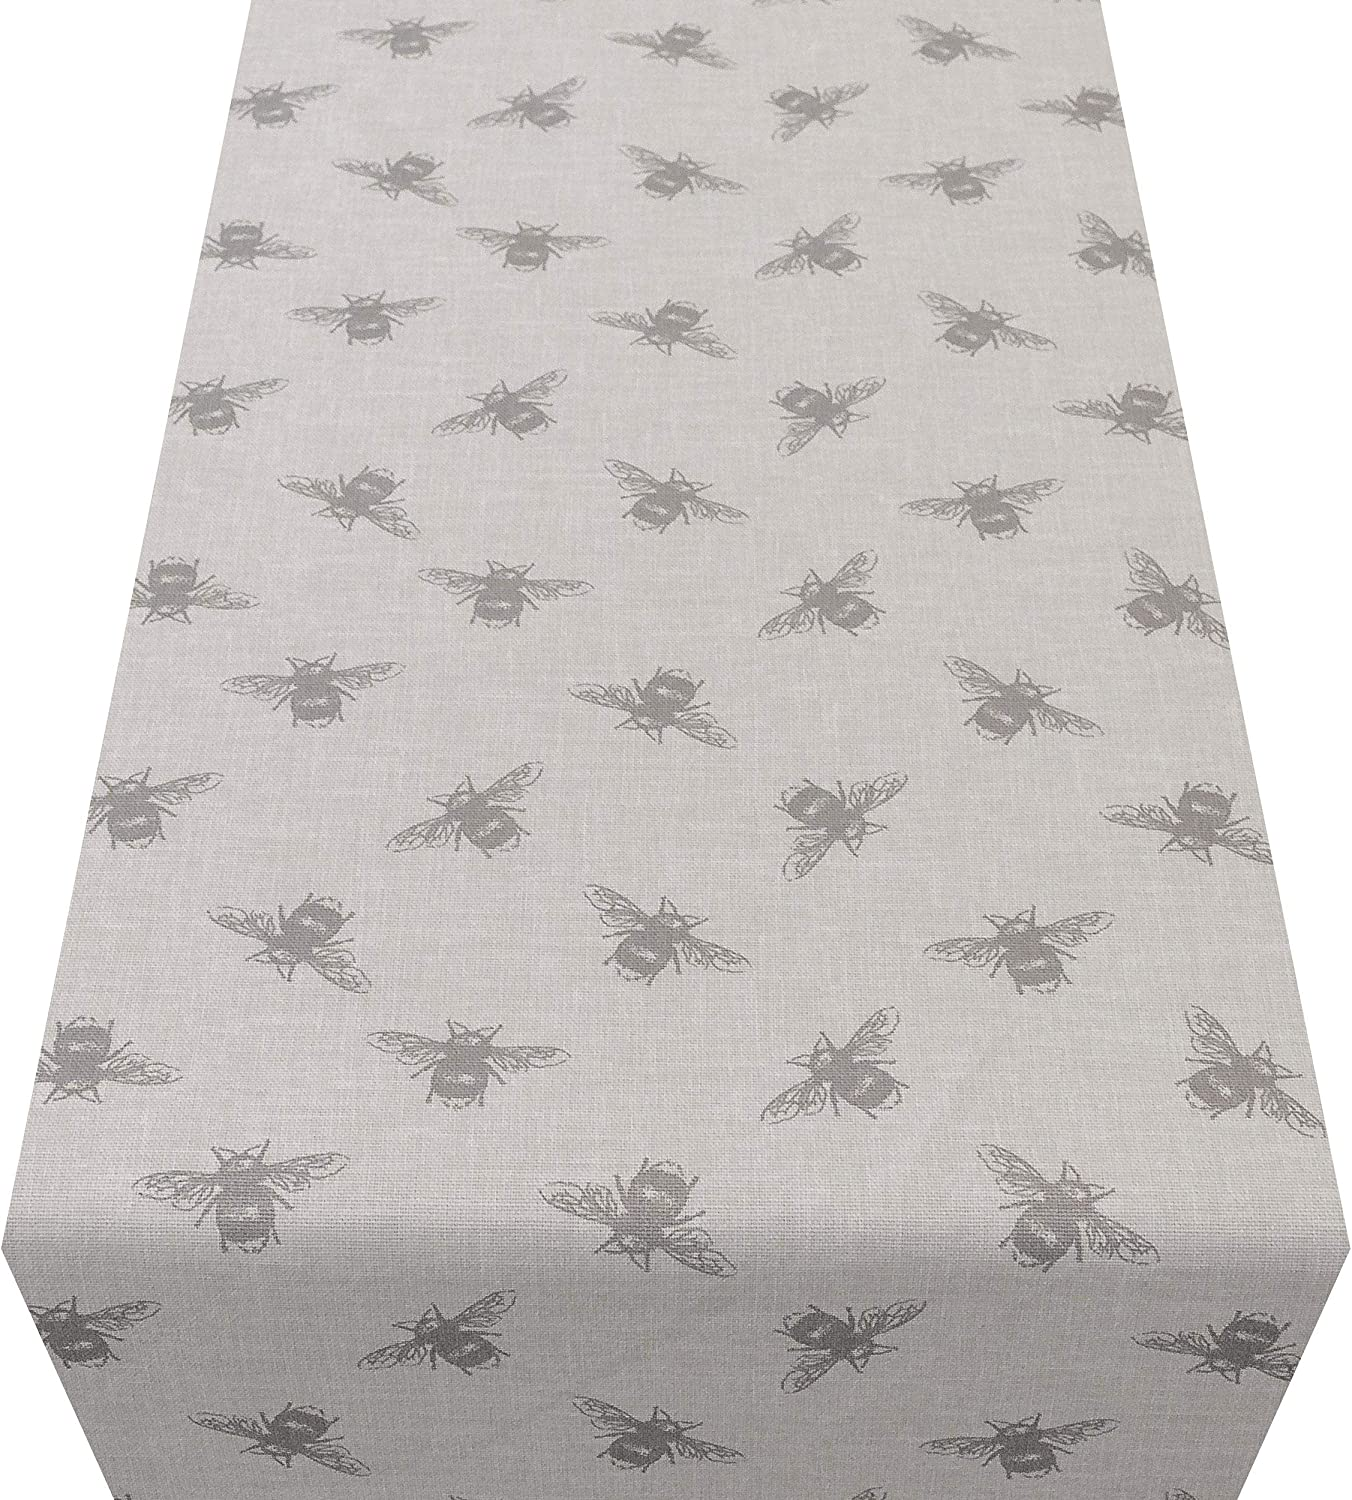 100/% Cotton Grey Bumblebee Table Runner Available in Two Sizes. Linen Style Vintage Bee Table Party Decoration 30cm x 180cm